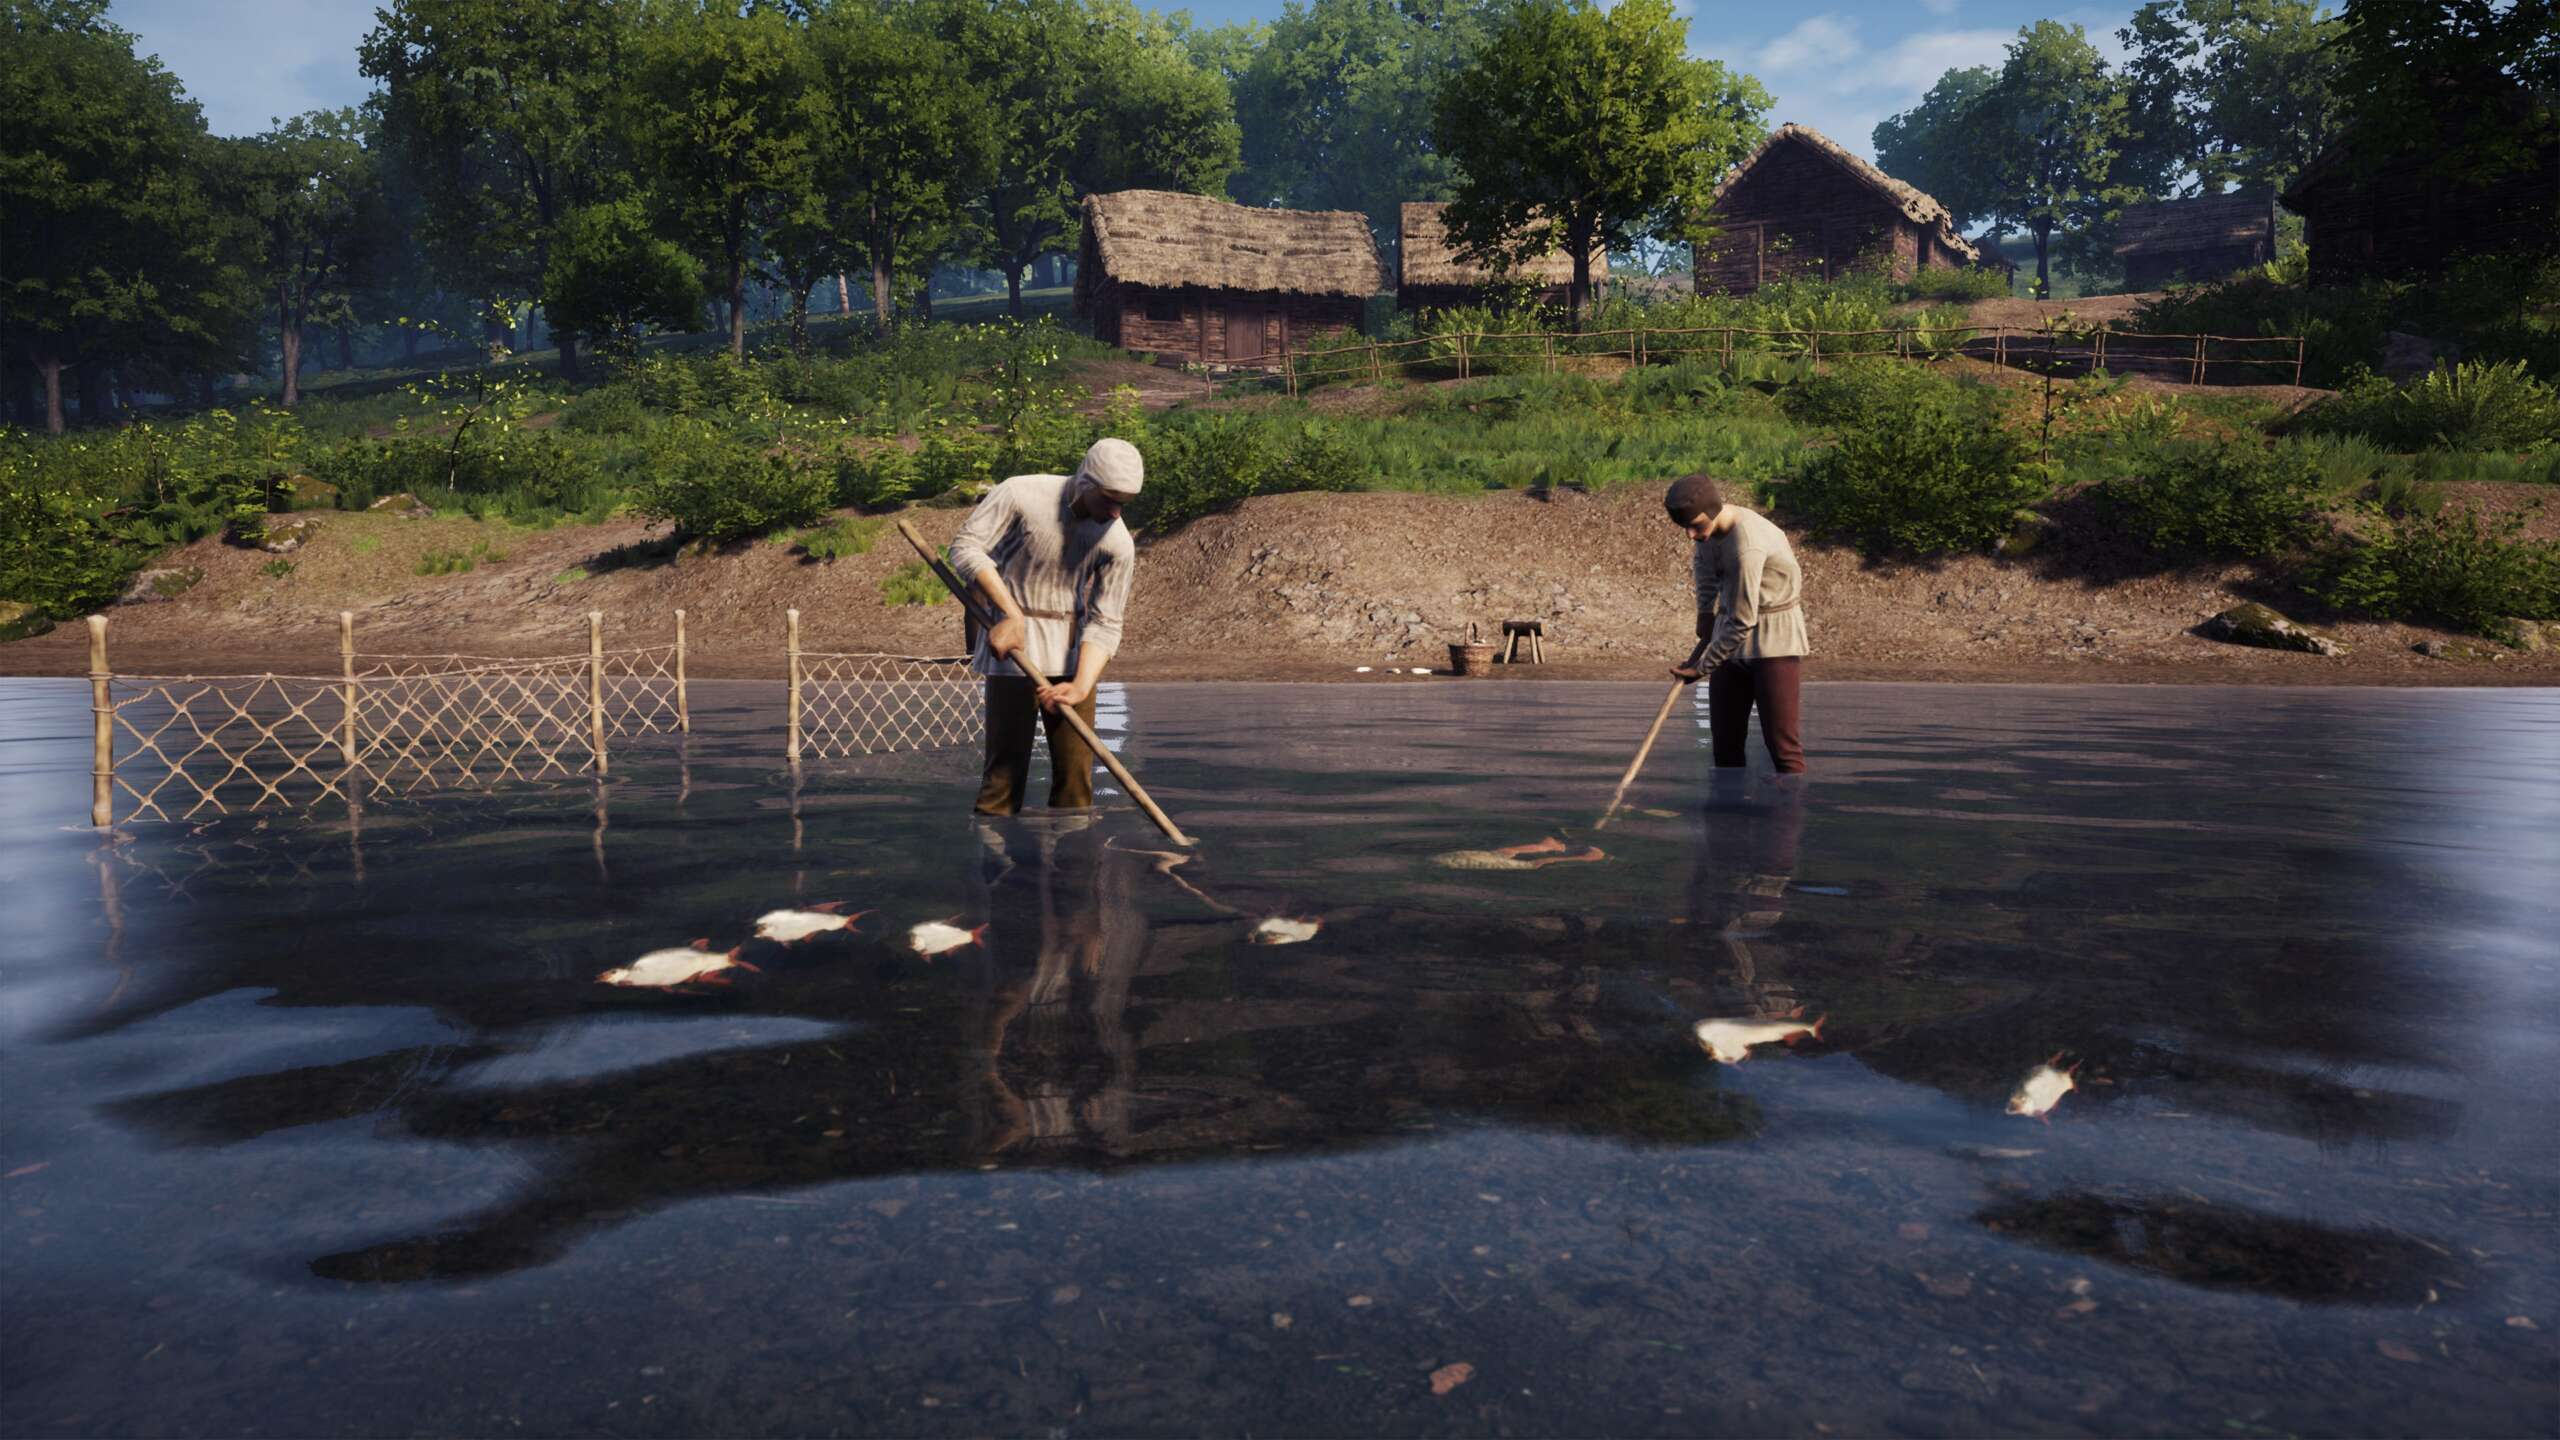 Medieval Dynasty Releases Major Content Update With Fishing, Roads, And More